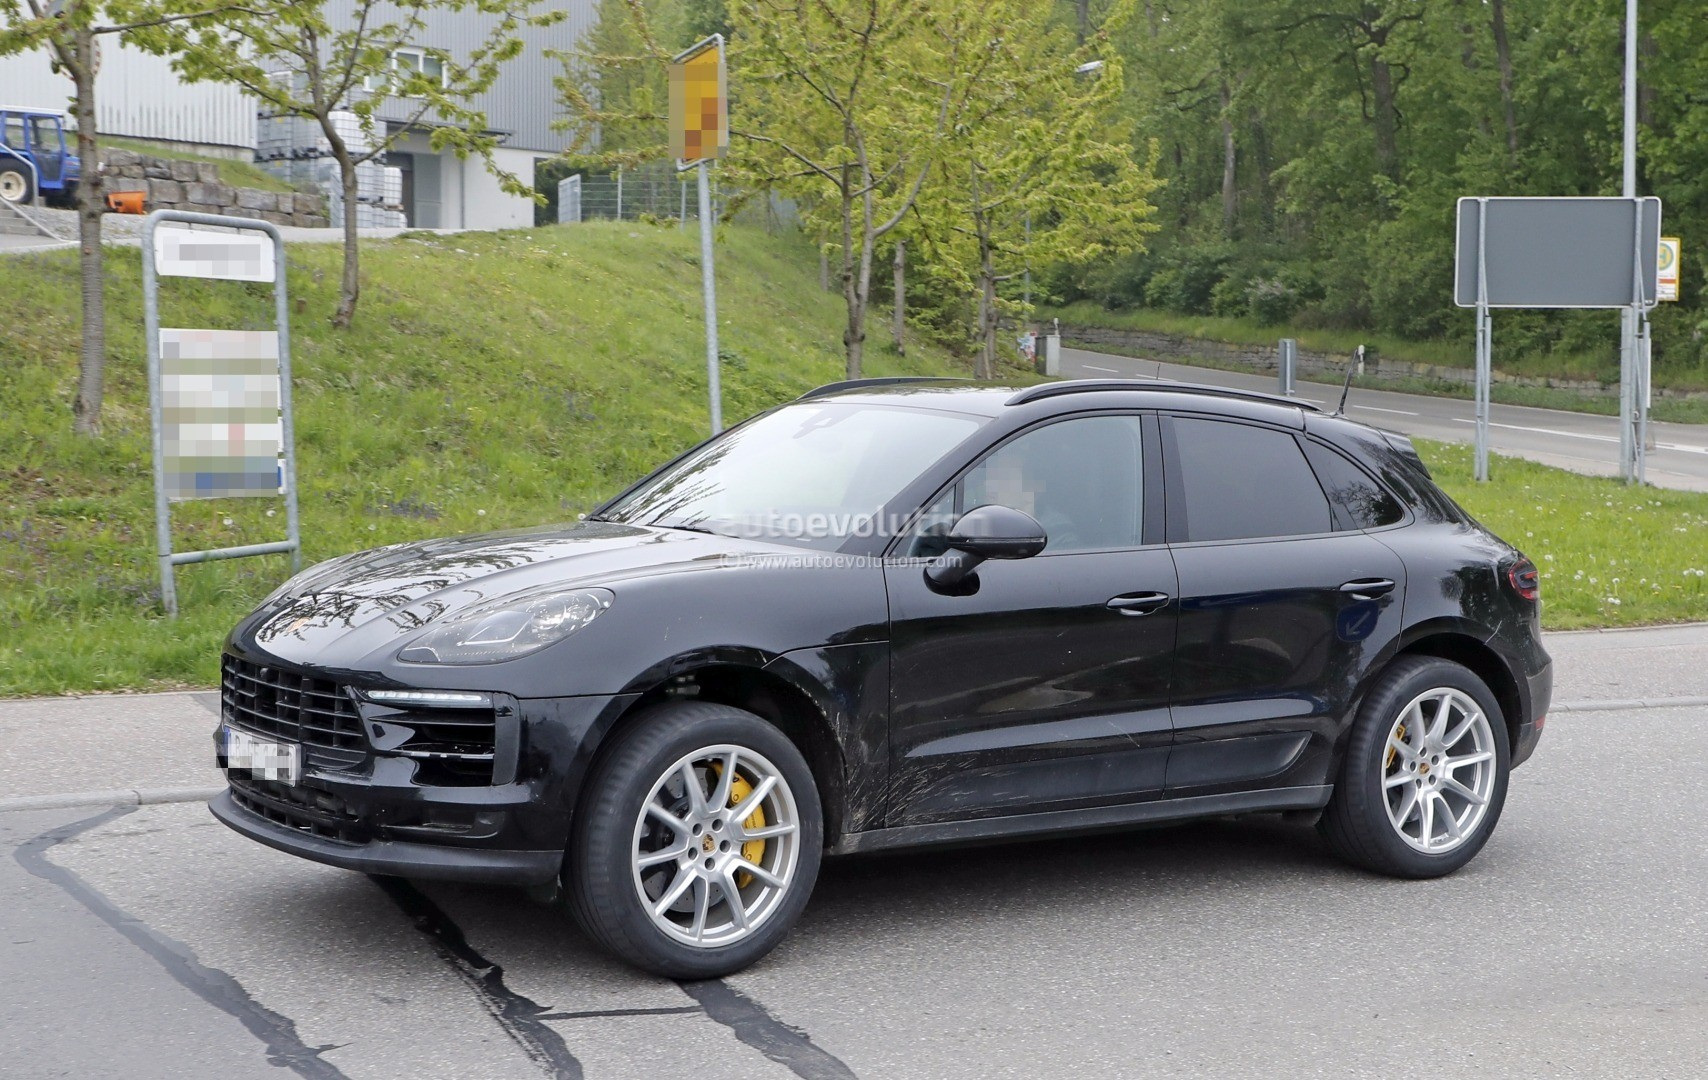 2019 Jeep Grand Cherokee Release Date >> Porsche Macan The Car Connection | Autos Post